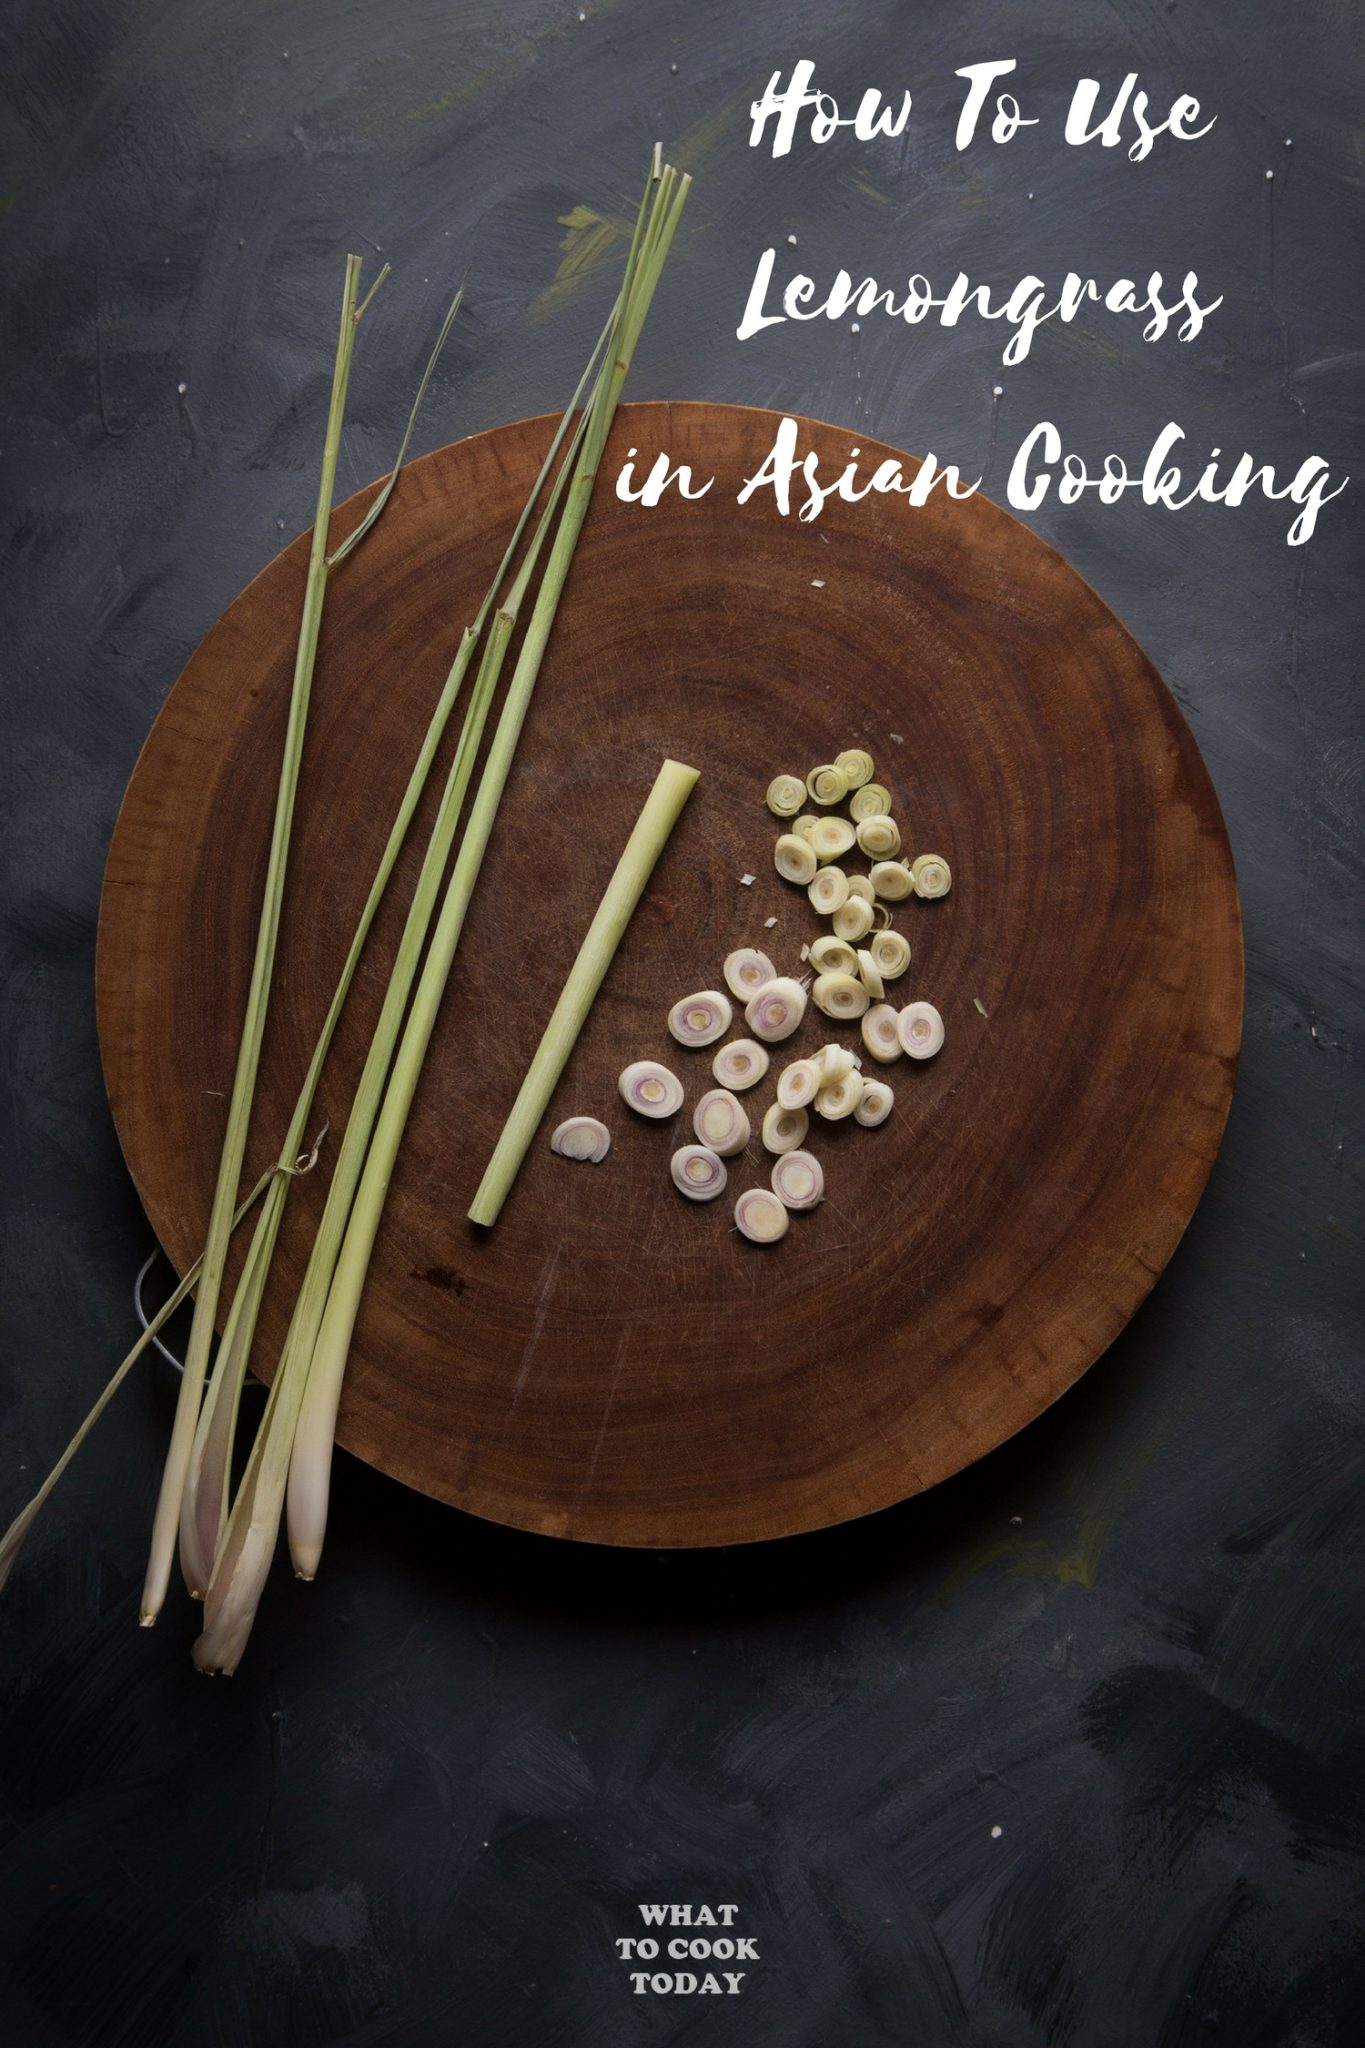 How To Use Lemongrass in Asian Cooking #Lemongrass #herb